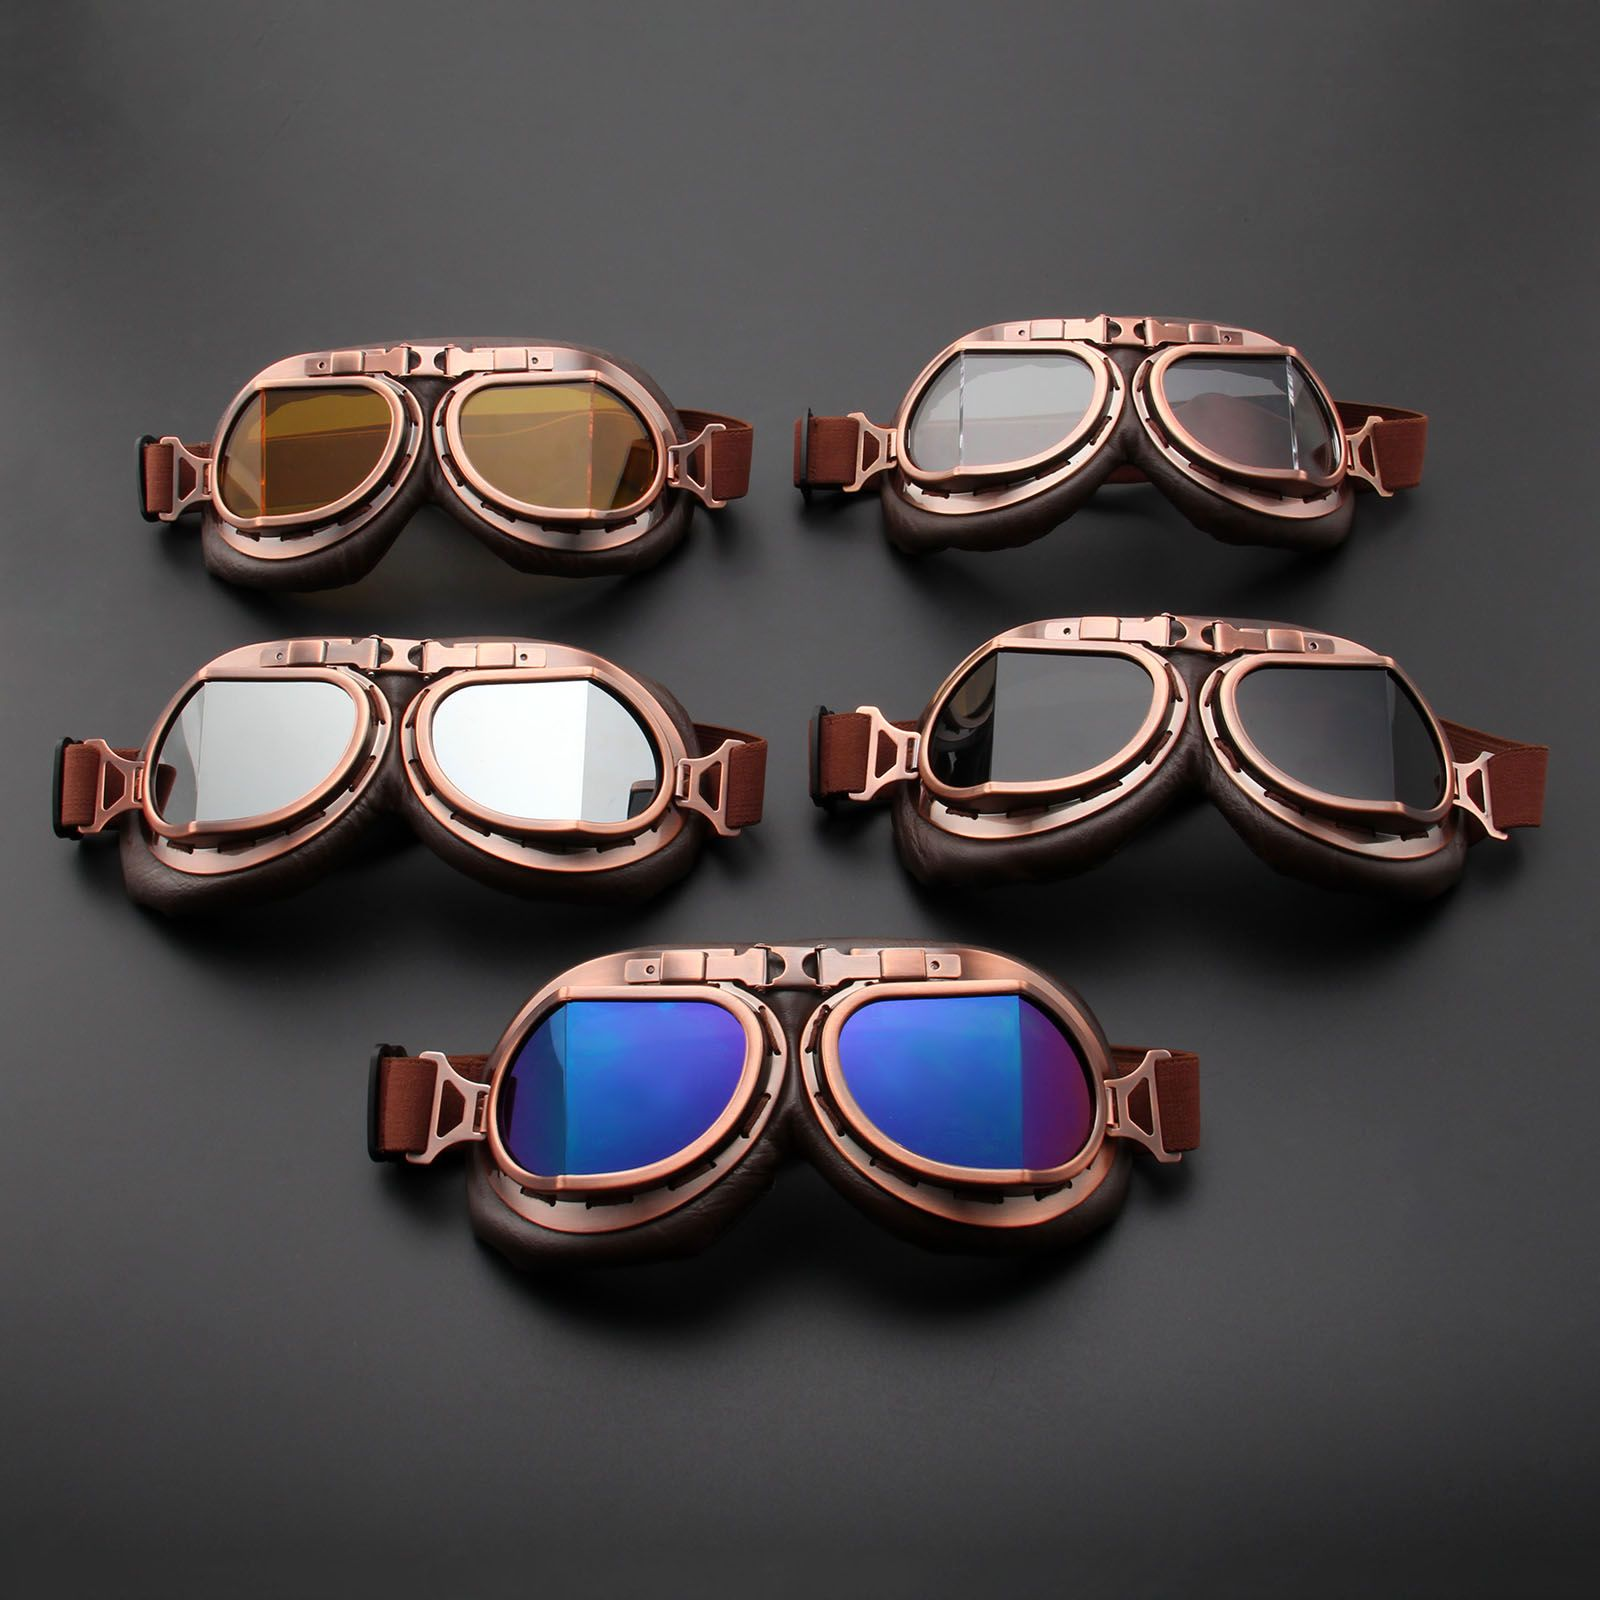 b3e03f136d 2000+Orders Price 10.17 Motorcycle Goggles Glasses Vintage Motocross  Classic Goggles Retro Aviator Pilot Cruiser Steampunk ATV Bike UV  Protection Copper